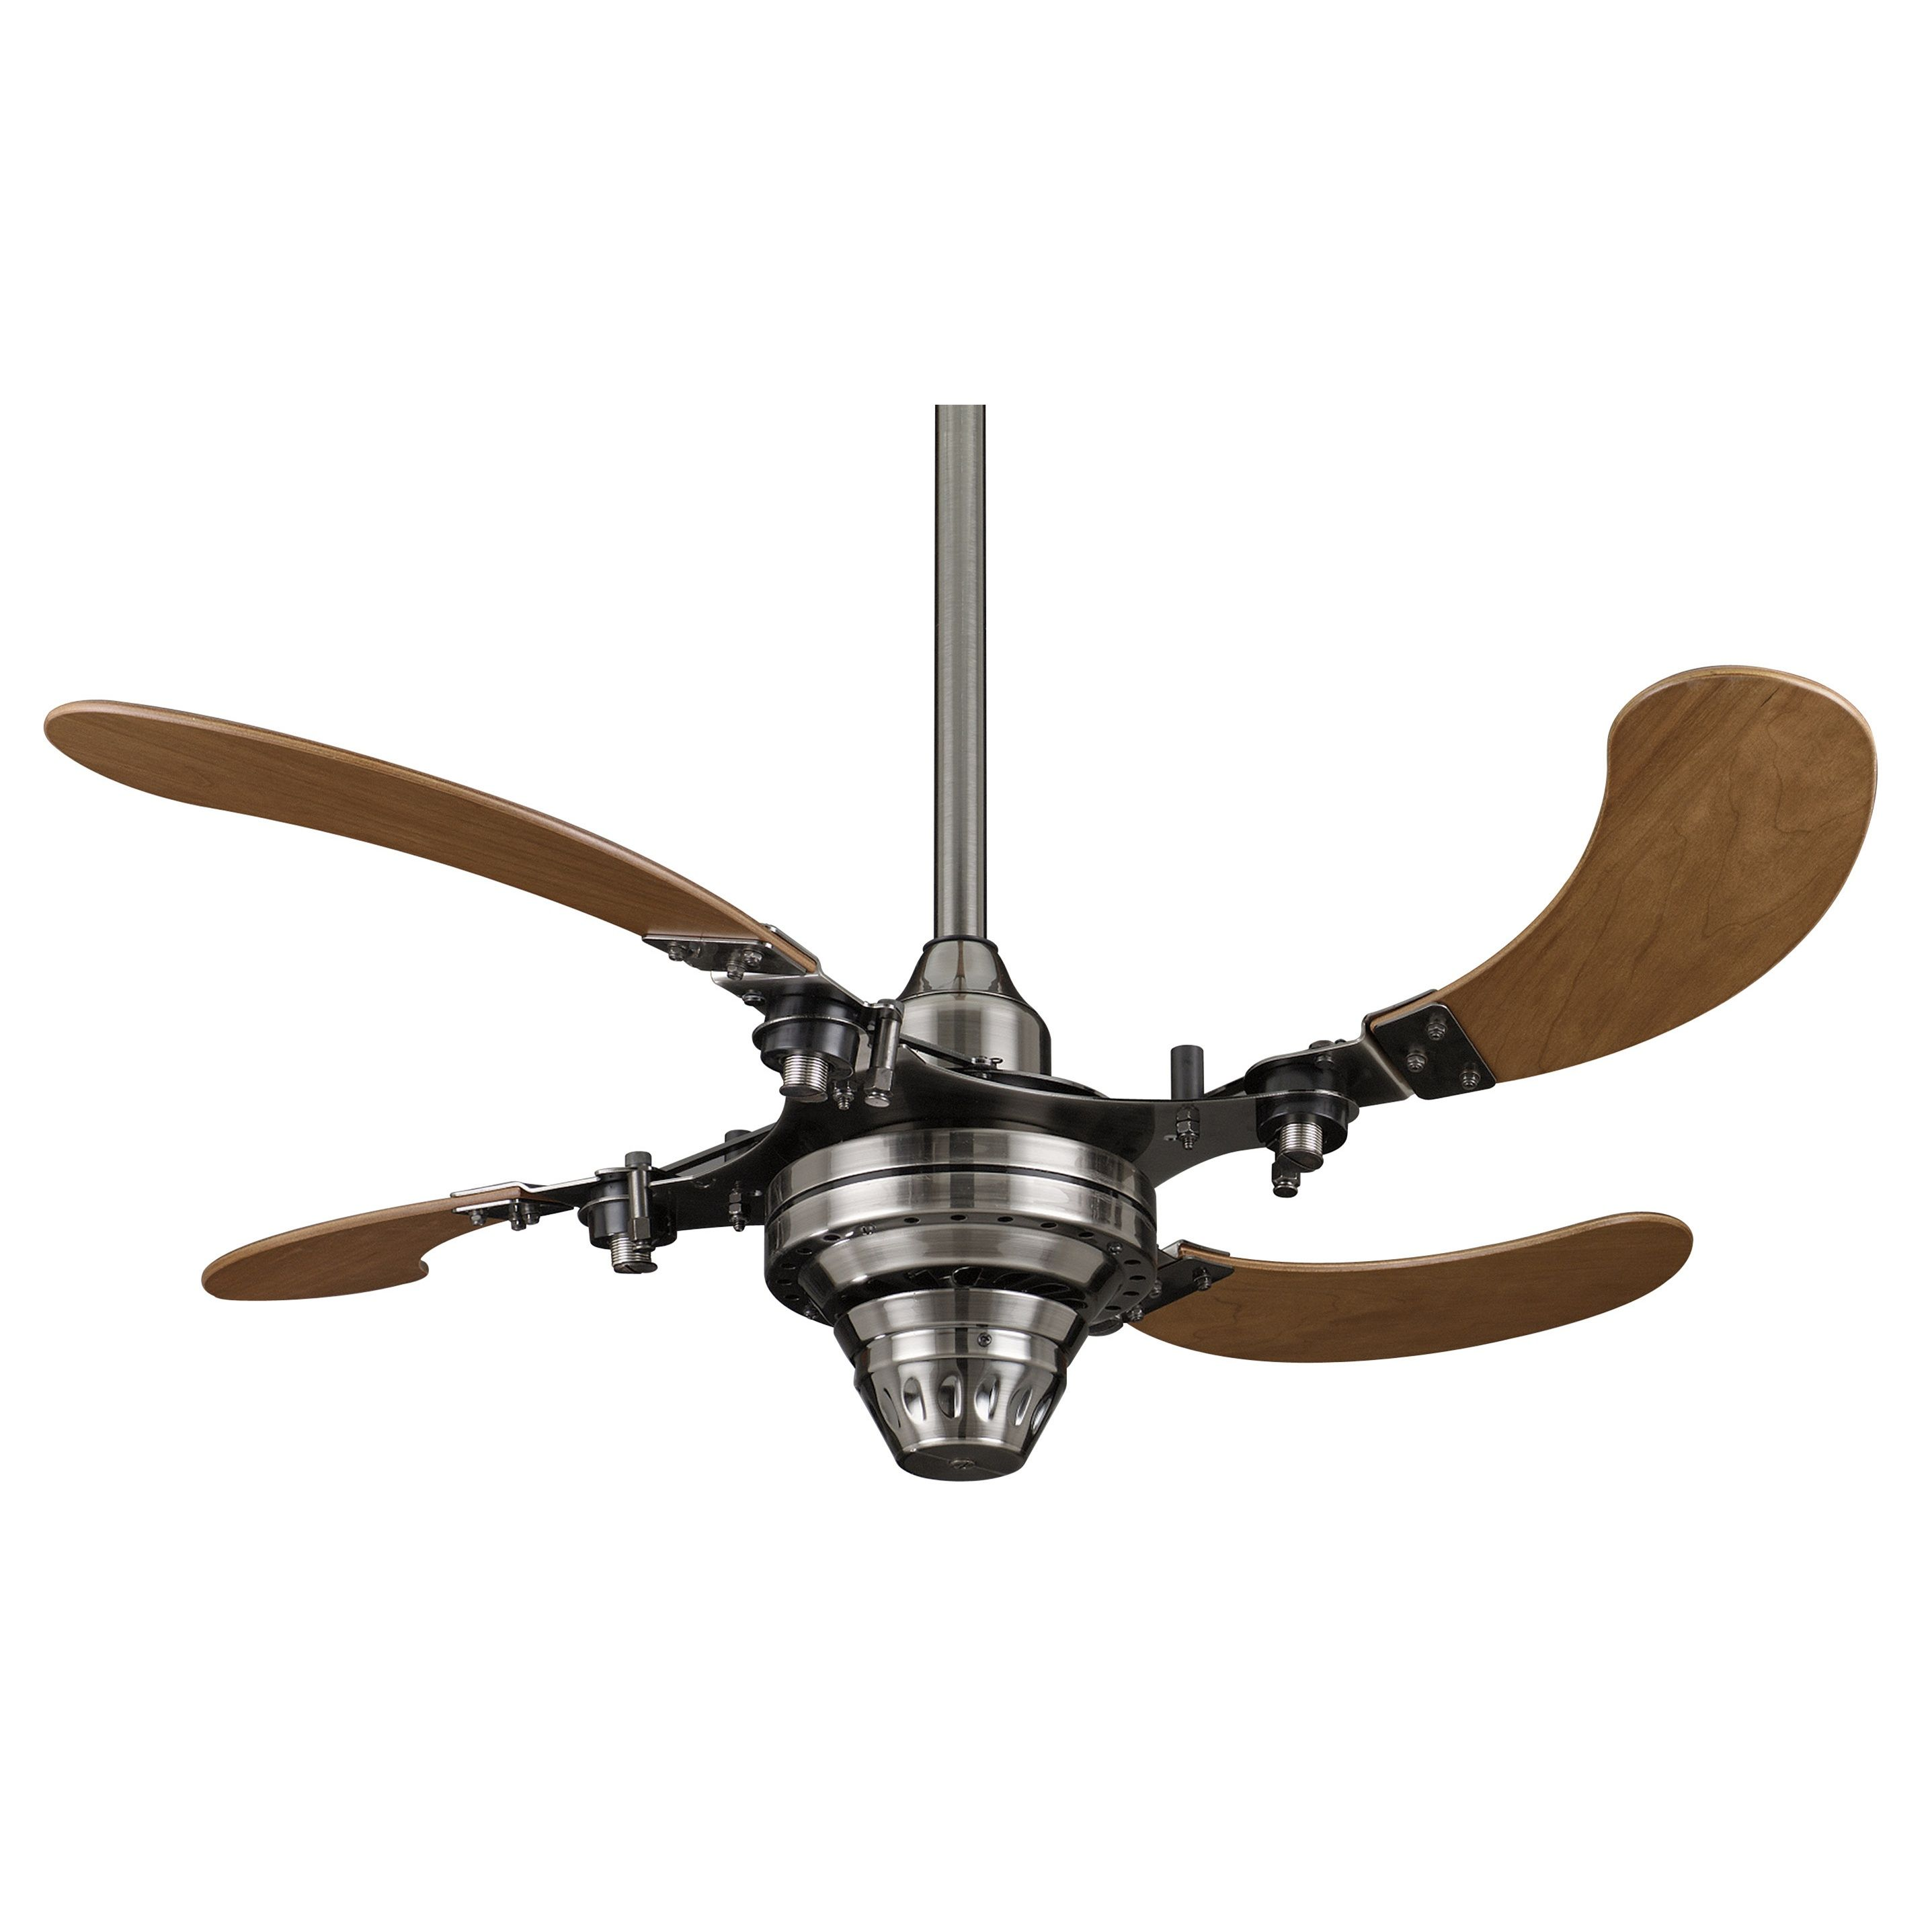 Fanimation Air Shadow 43 inch Pewter Retractable Ceiling Fan by